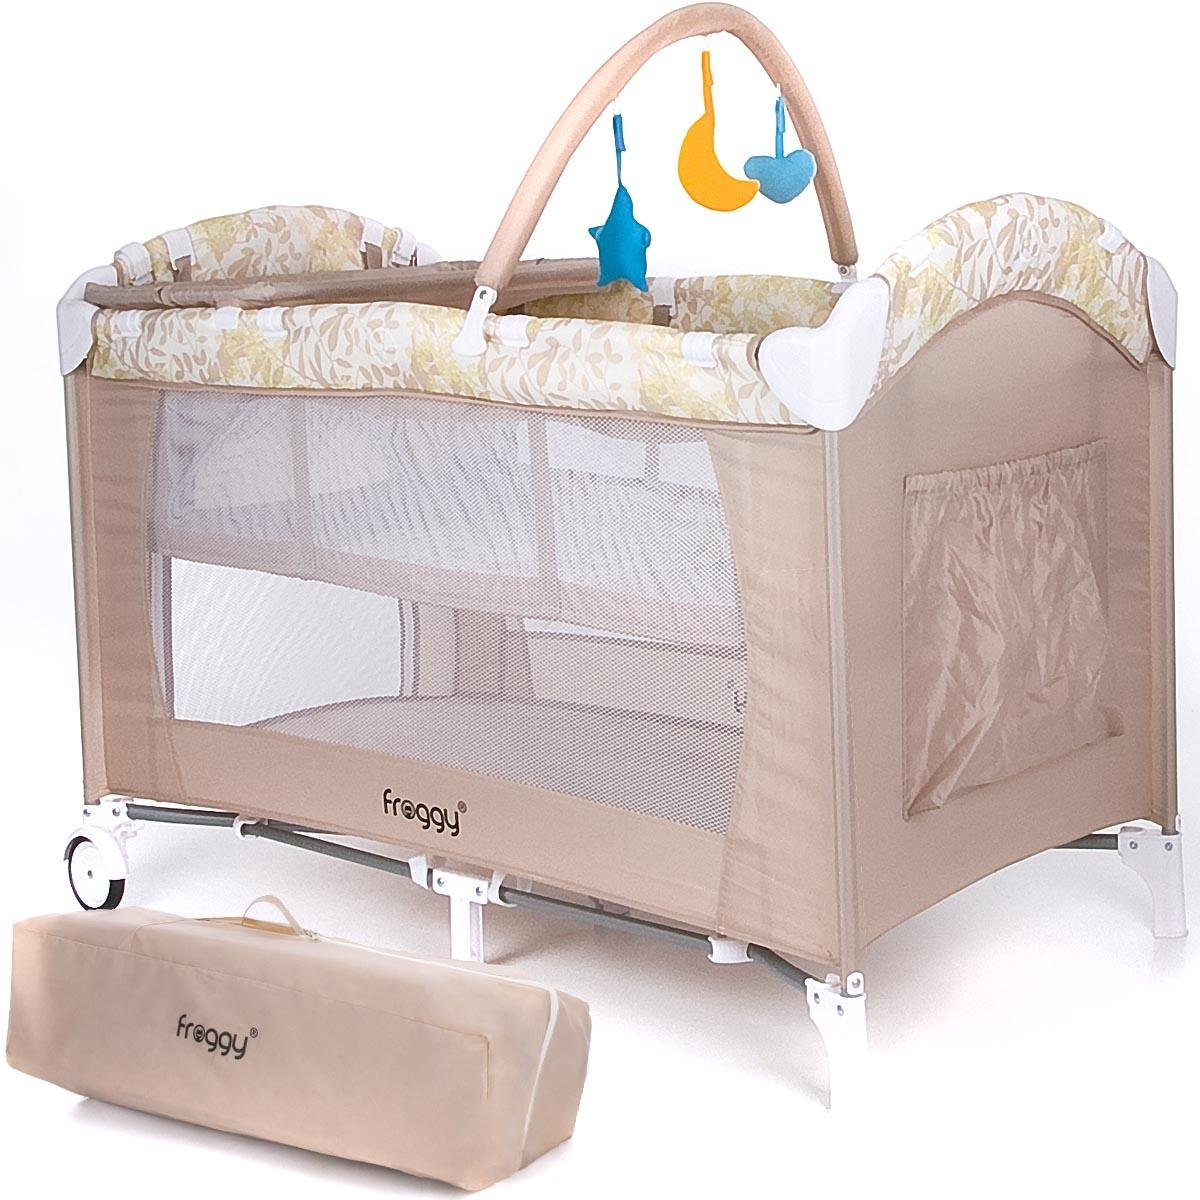 Froggy® Baby bed travel cot furniture cribs portable child bed ...